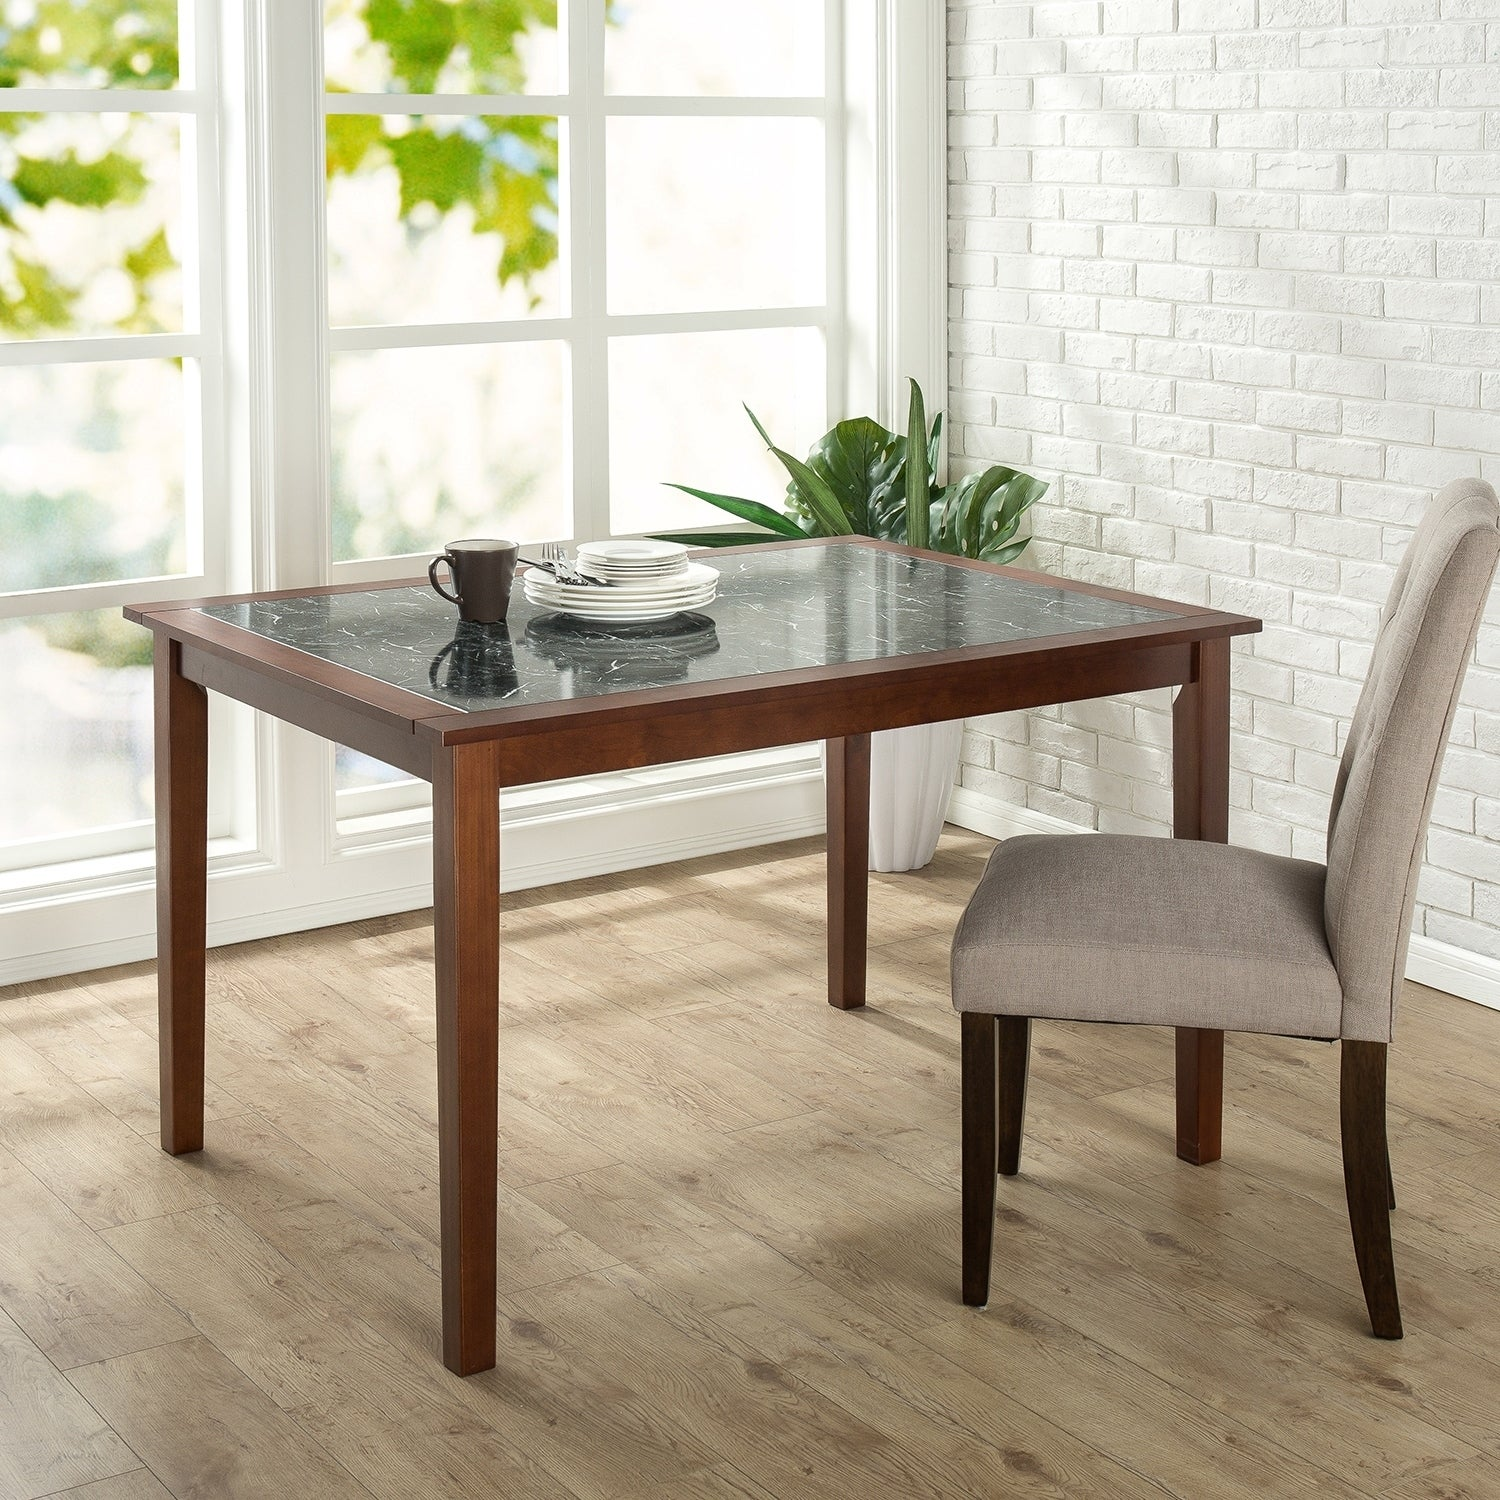 Priage By Zinus Faux Marble And Wood Dining Table On Sale Overstock 17076381